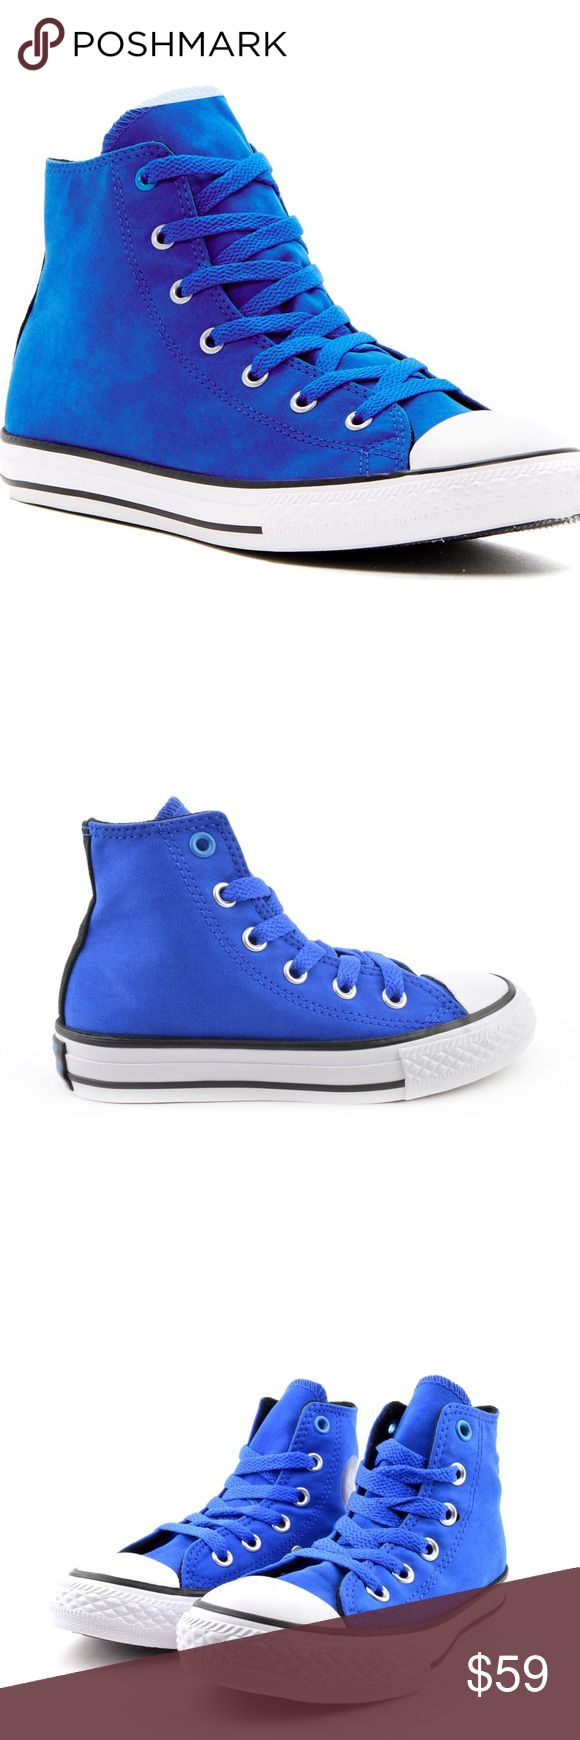 Converse Chuck Taylors blue hi tops women size 7.5 Shoes are a size 5.5 juniors which is a women's size 7.5 Brand new without box. Converse Shoes Sneakers